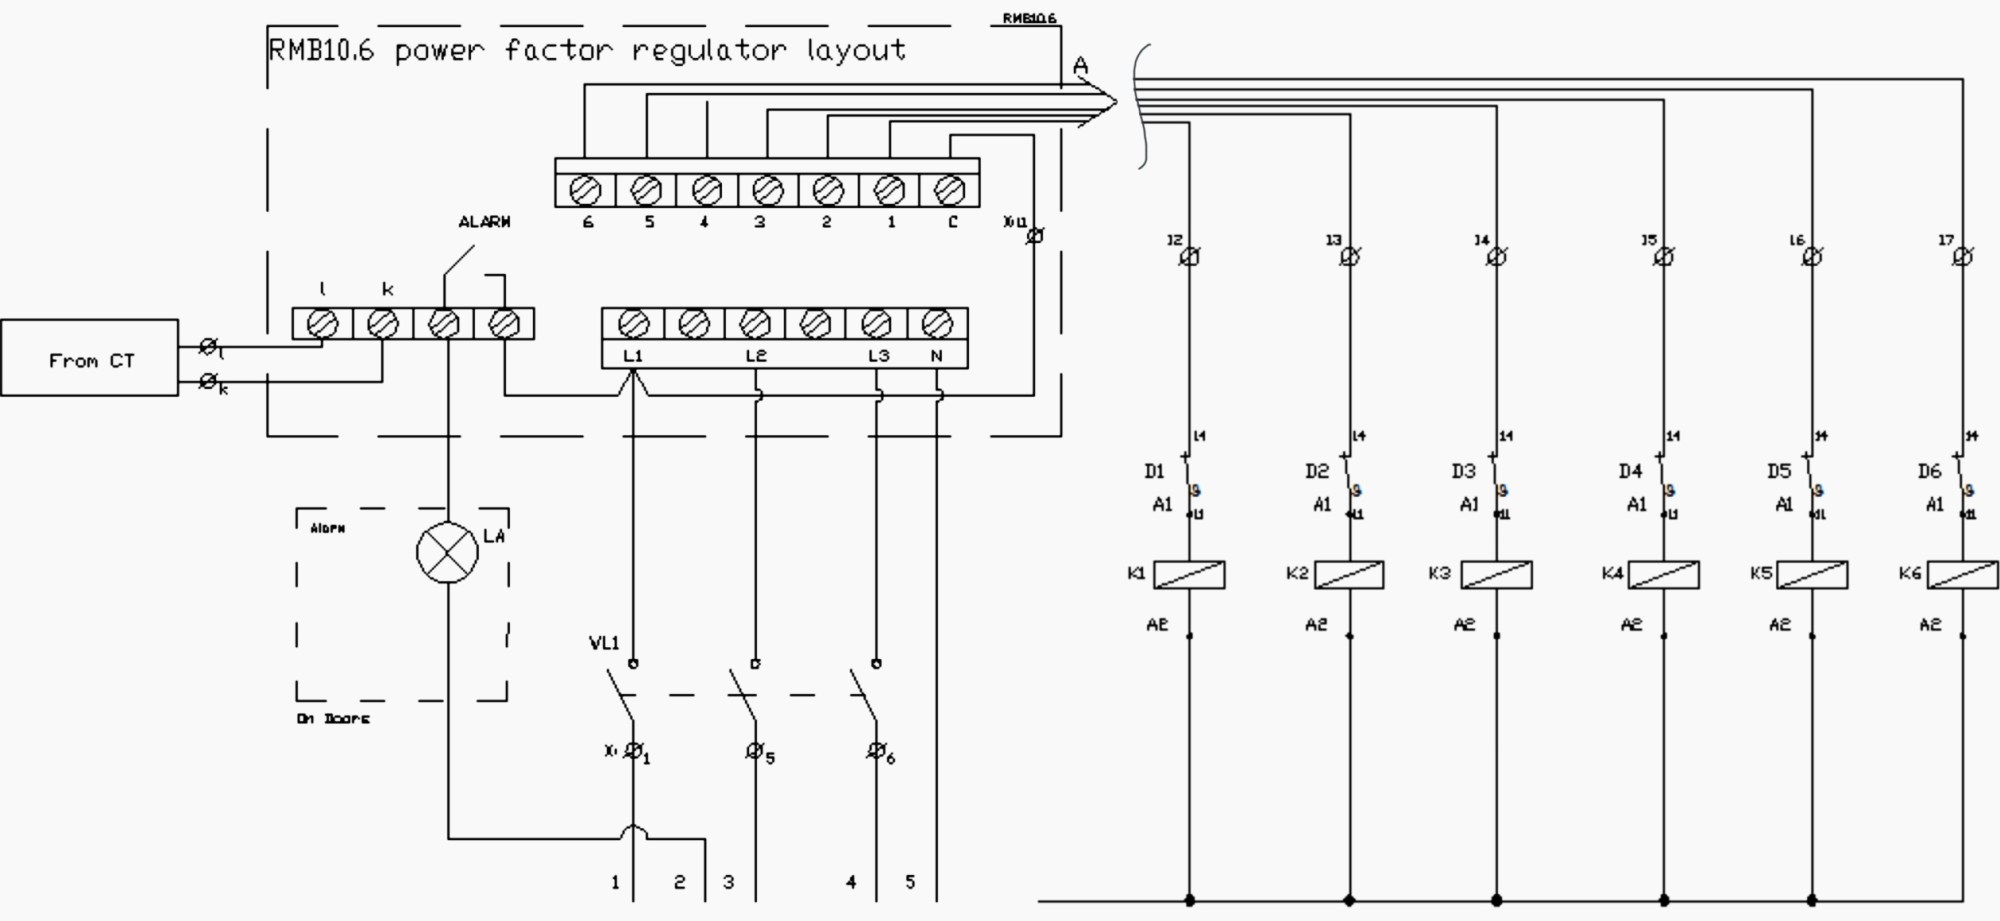 hight resolution of load bank wiring diagram wiring diagram for you load bank wiring diagram wiring diagrams lol generator